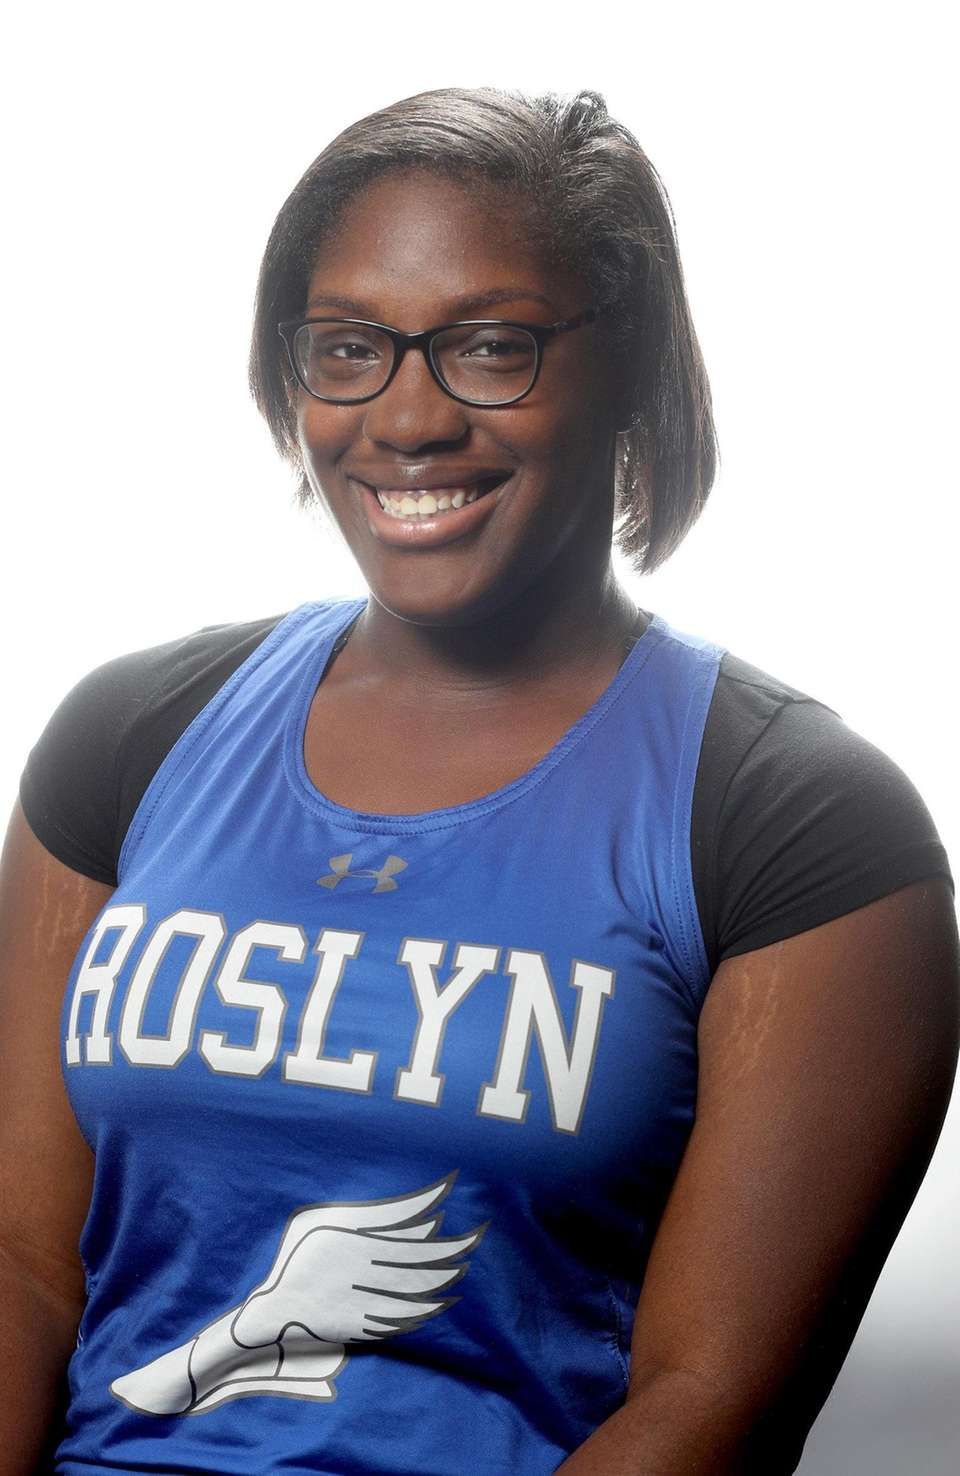 Girls Track - Natya Glasco, Roslyn High School